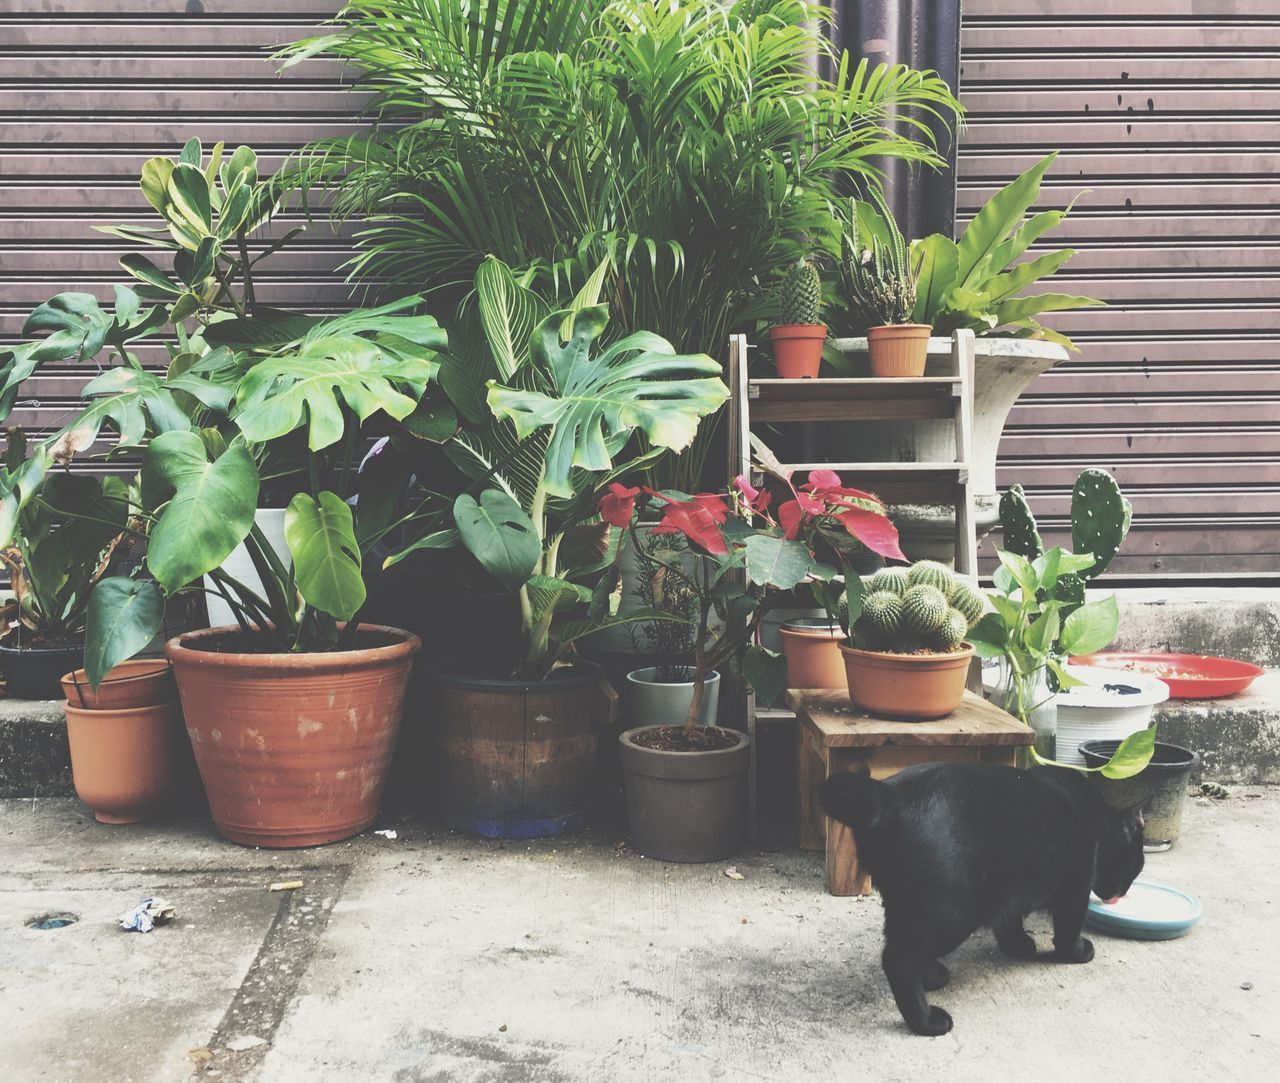 potted plant, plant, growth, domestic, pets, mammal, domestic animals, animal themes, one animal, animal, green color, no people, nature, front or back yard, domestic cat, day, plant part, cat, leaf, vertebrate, outdoors, houseplant, flower pot, gardening